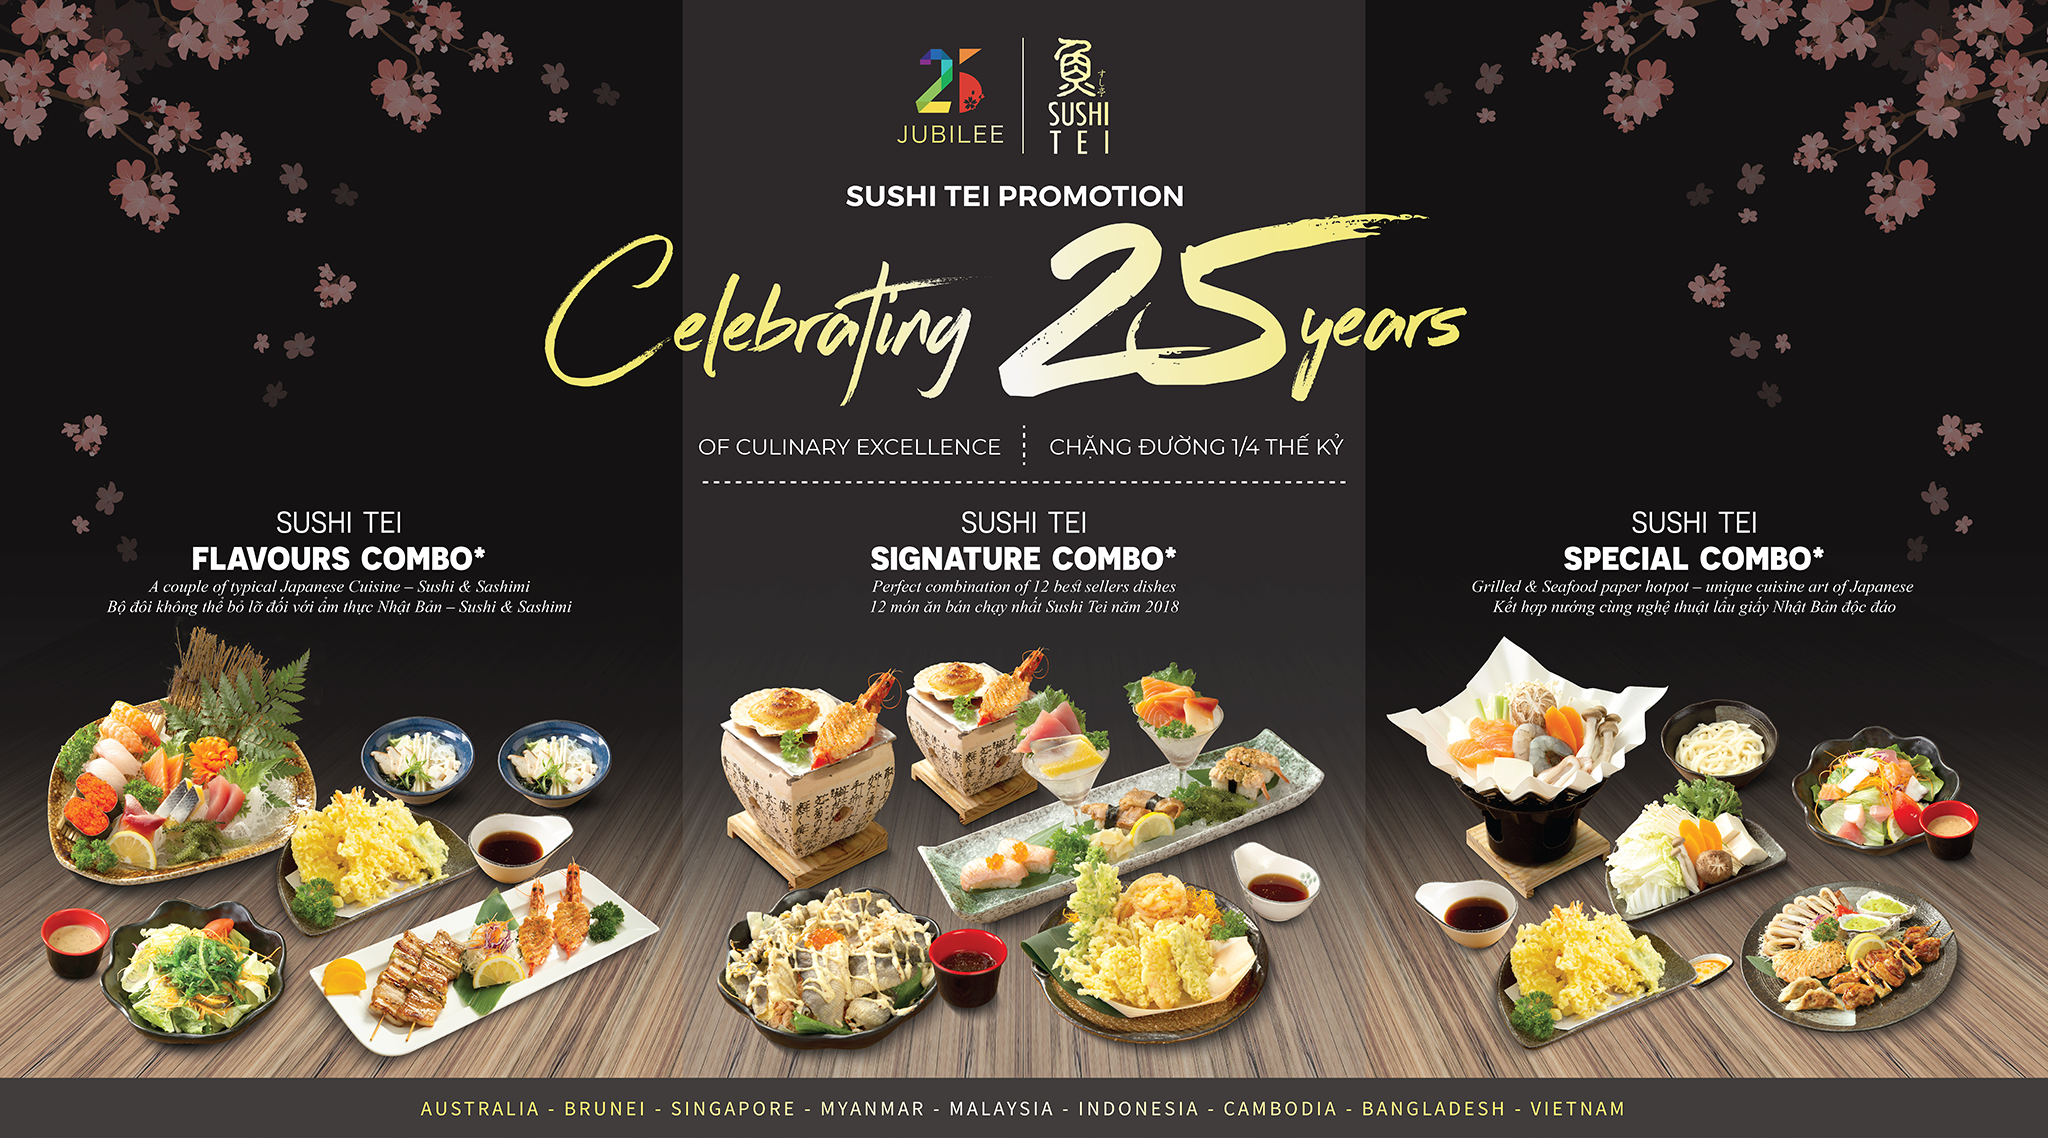 SUSHI TEI 25 JUBILEE COMBO PROMOTION - CELEBRATING 25 YEARS OF CULINARY EXCELLENCE